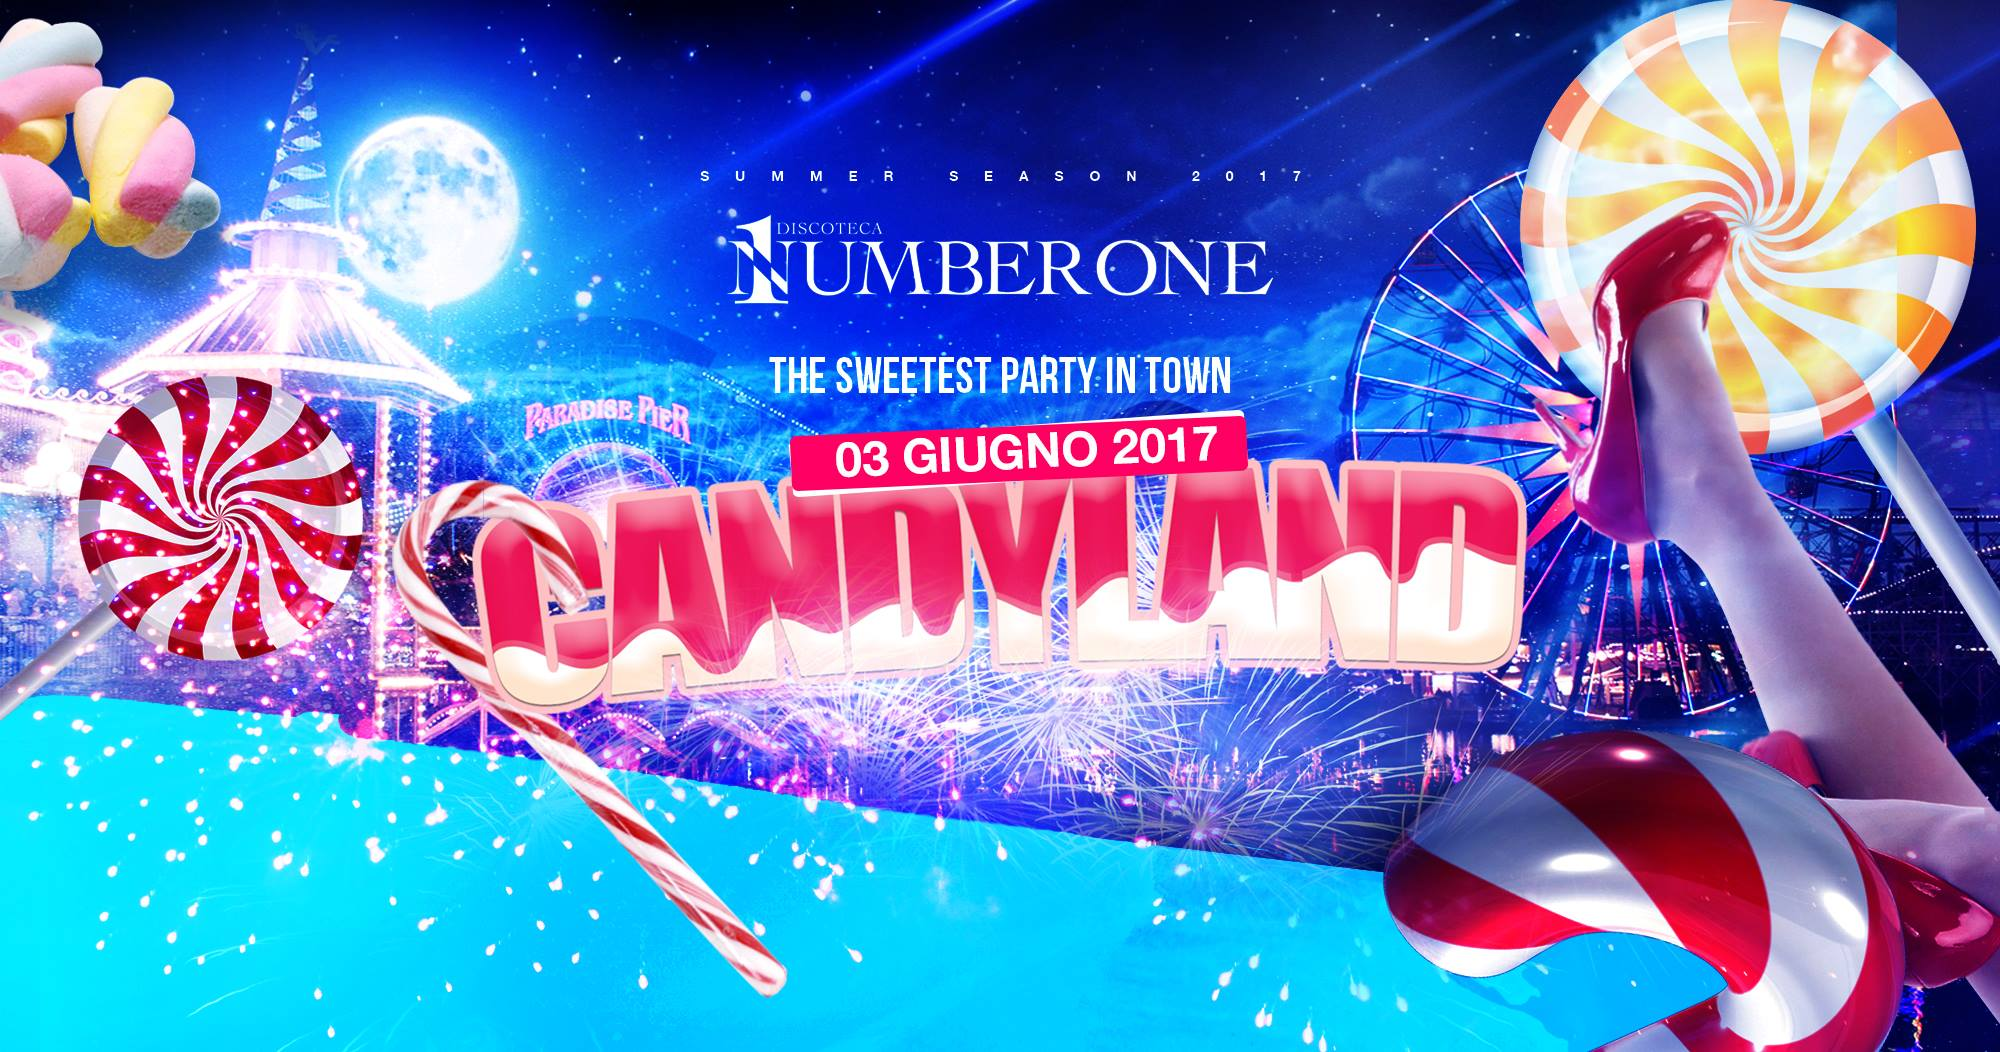 CANDYLAND ★ The Sweetest Party in Town ★